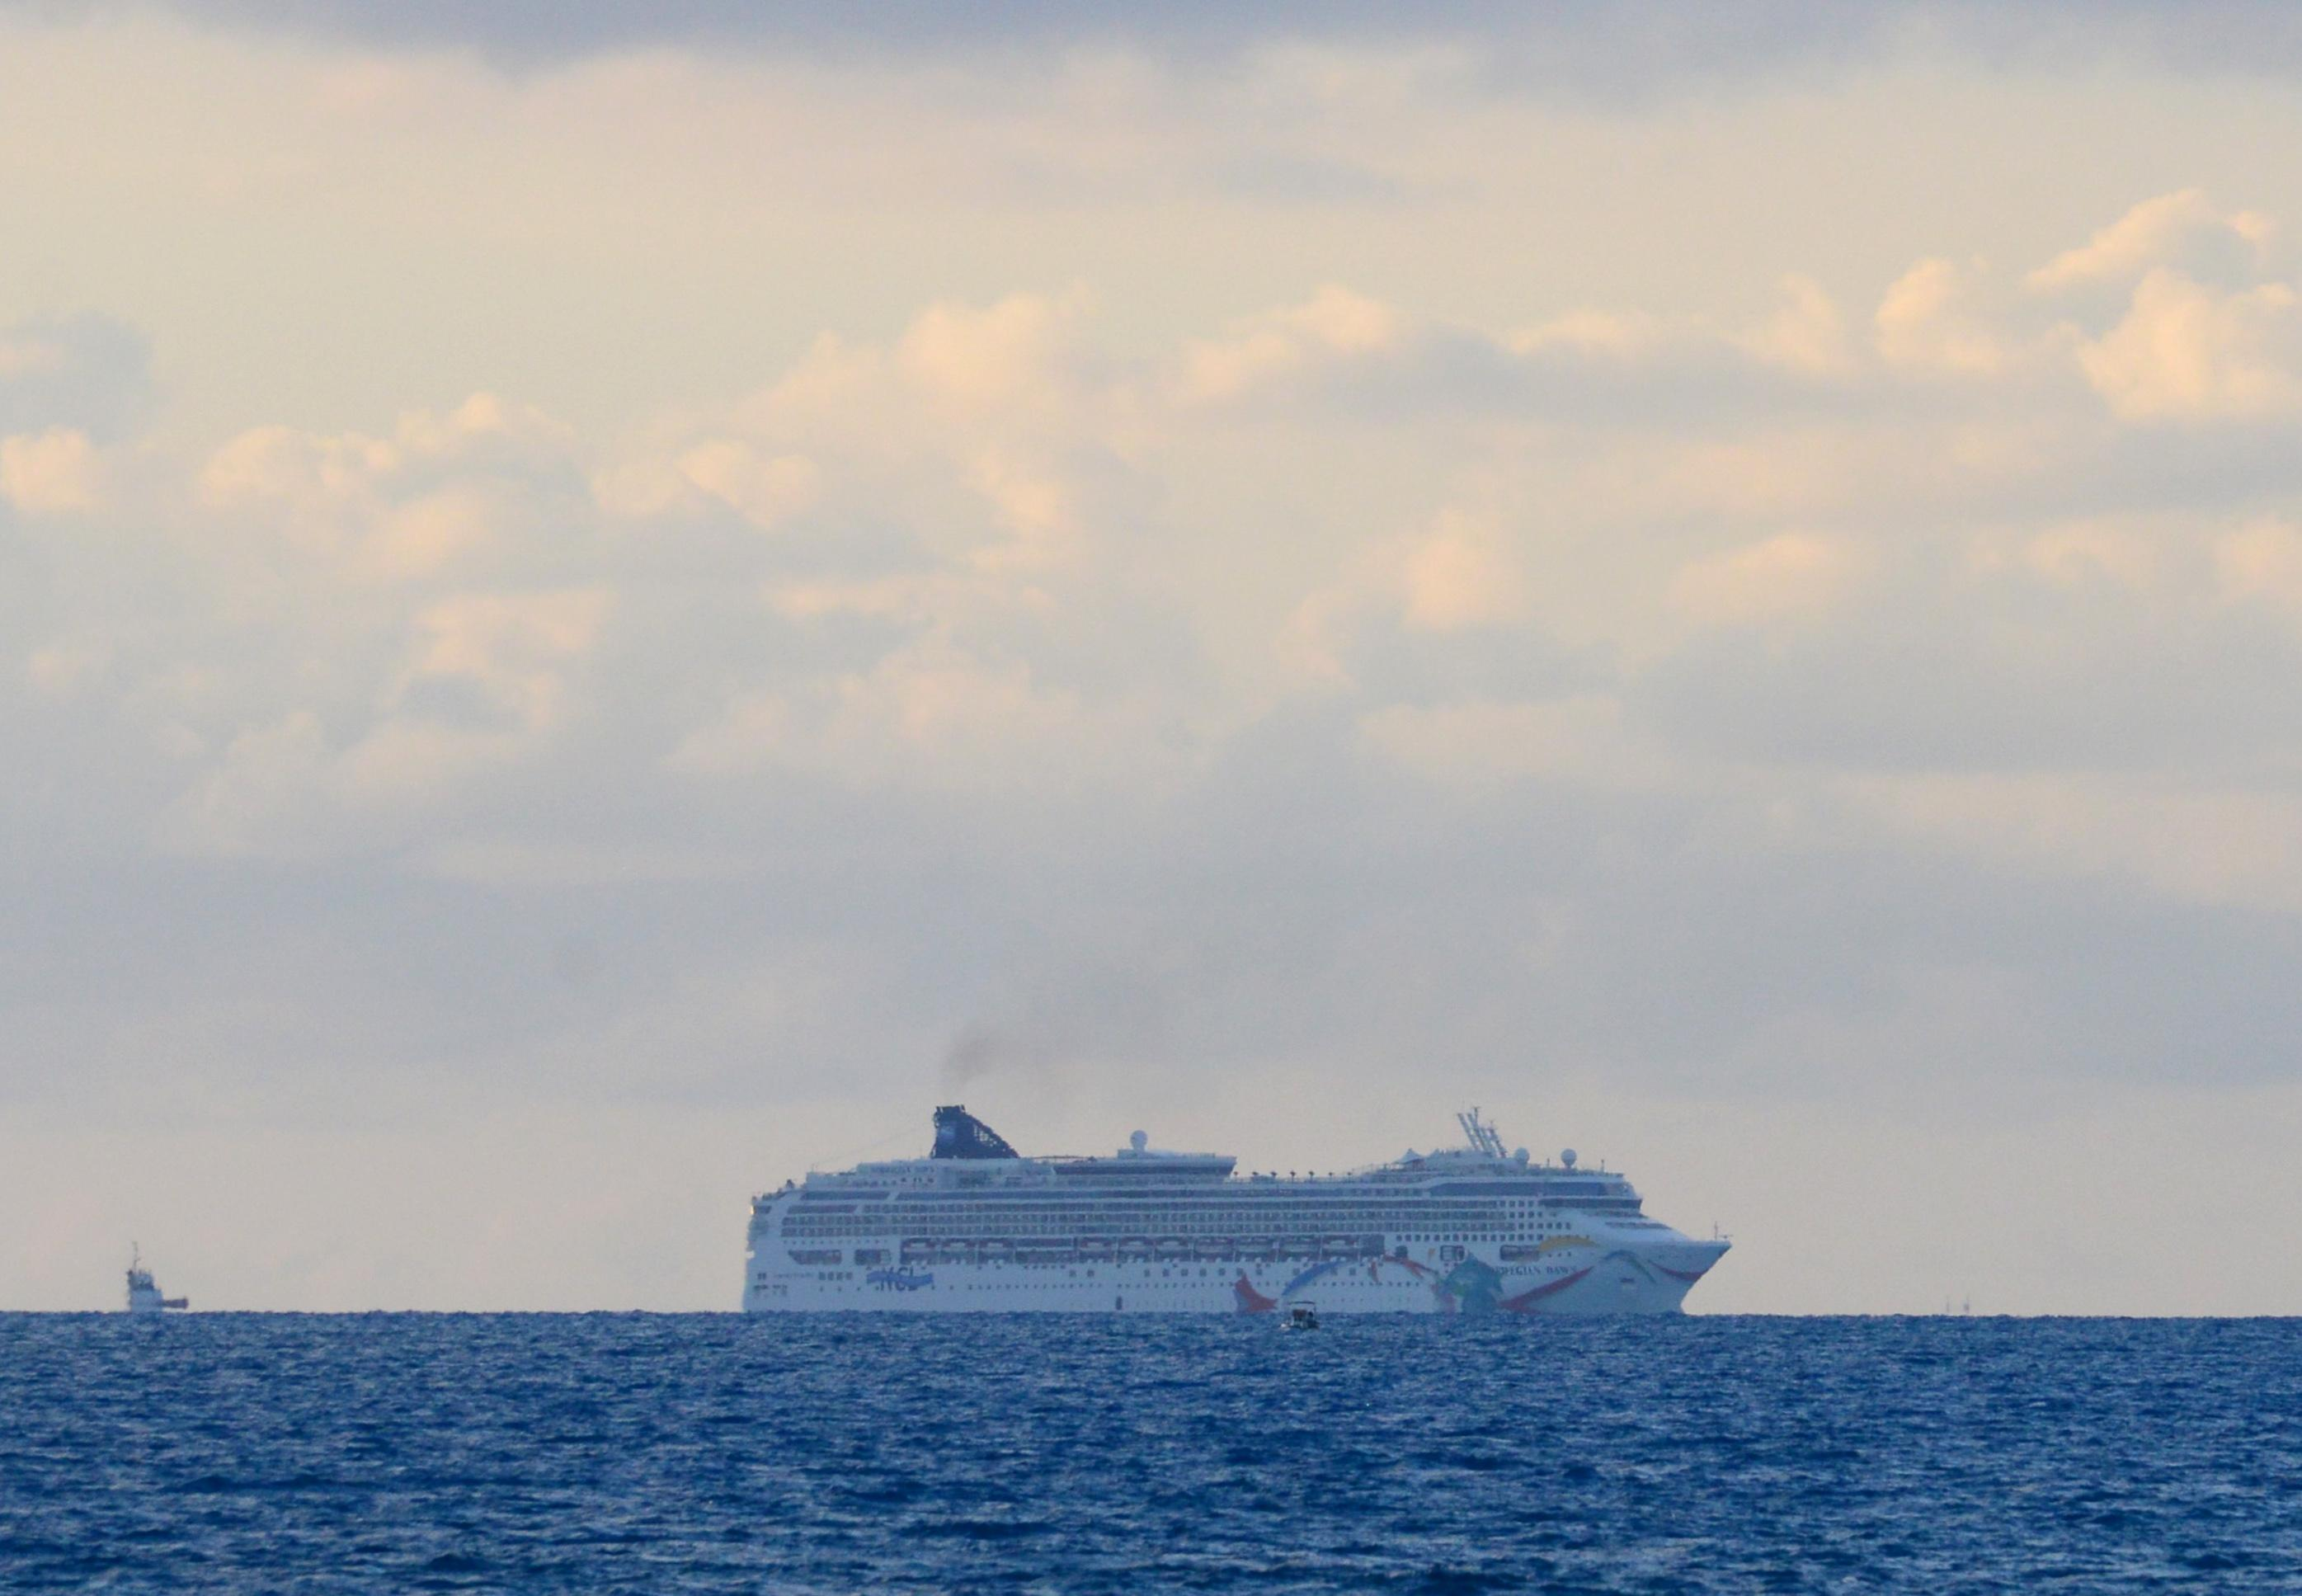 Cruise ship freed from reef off Bermuda departs for Boston